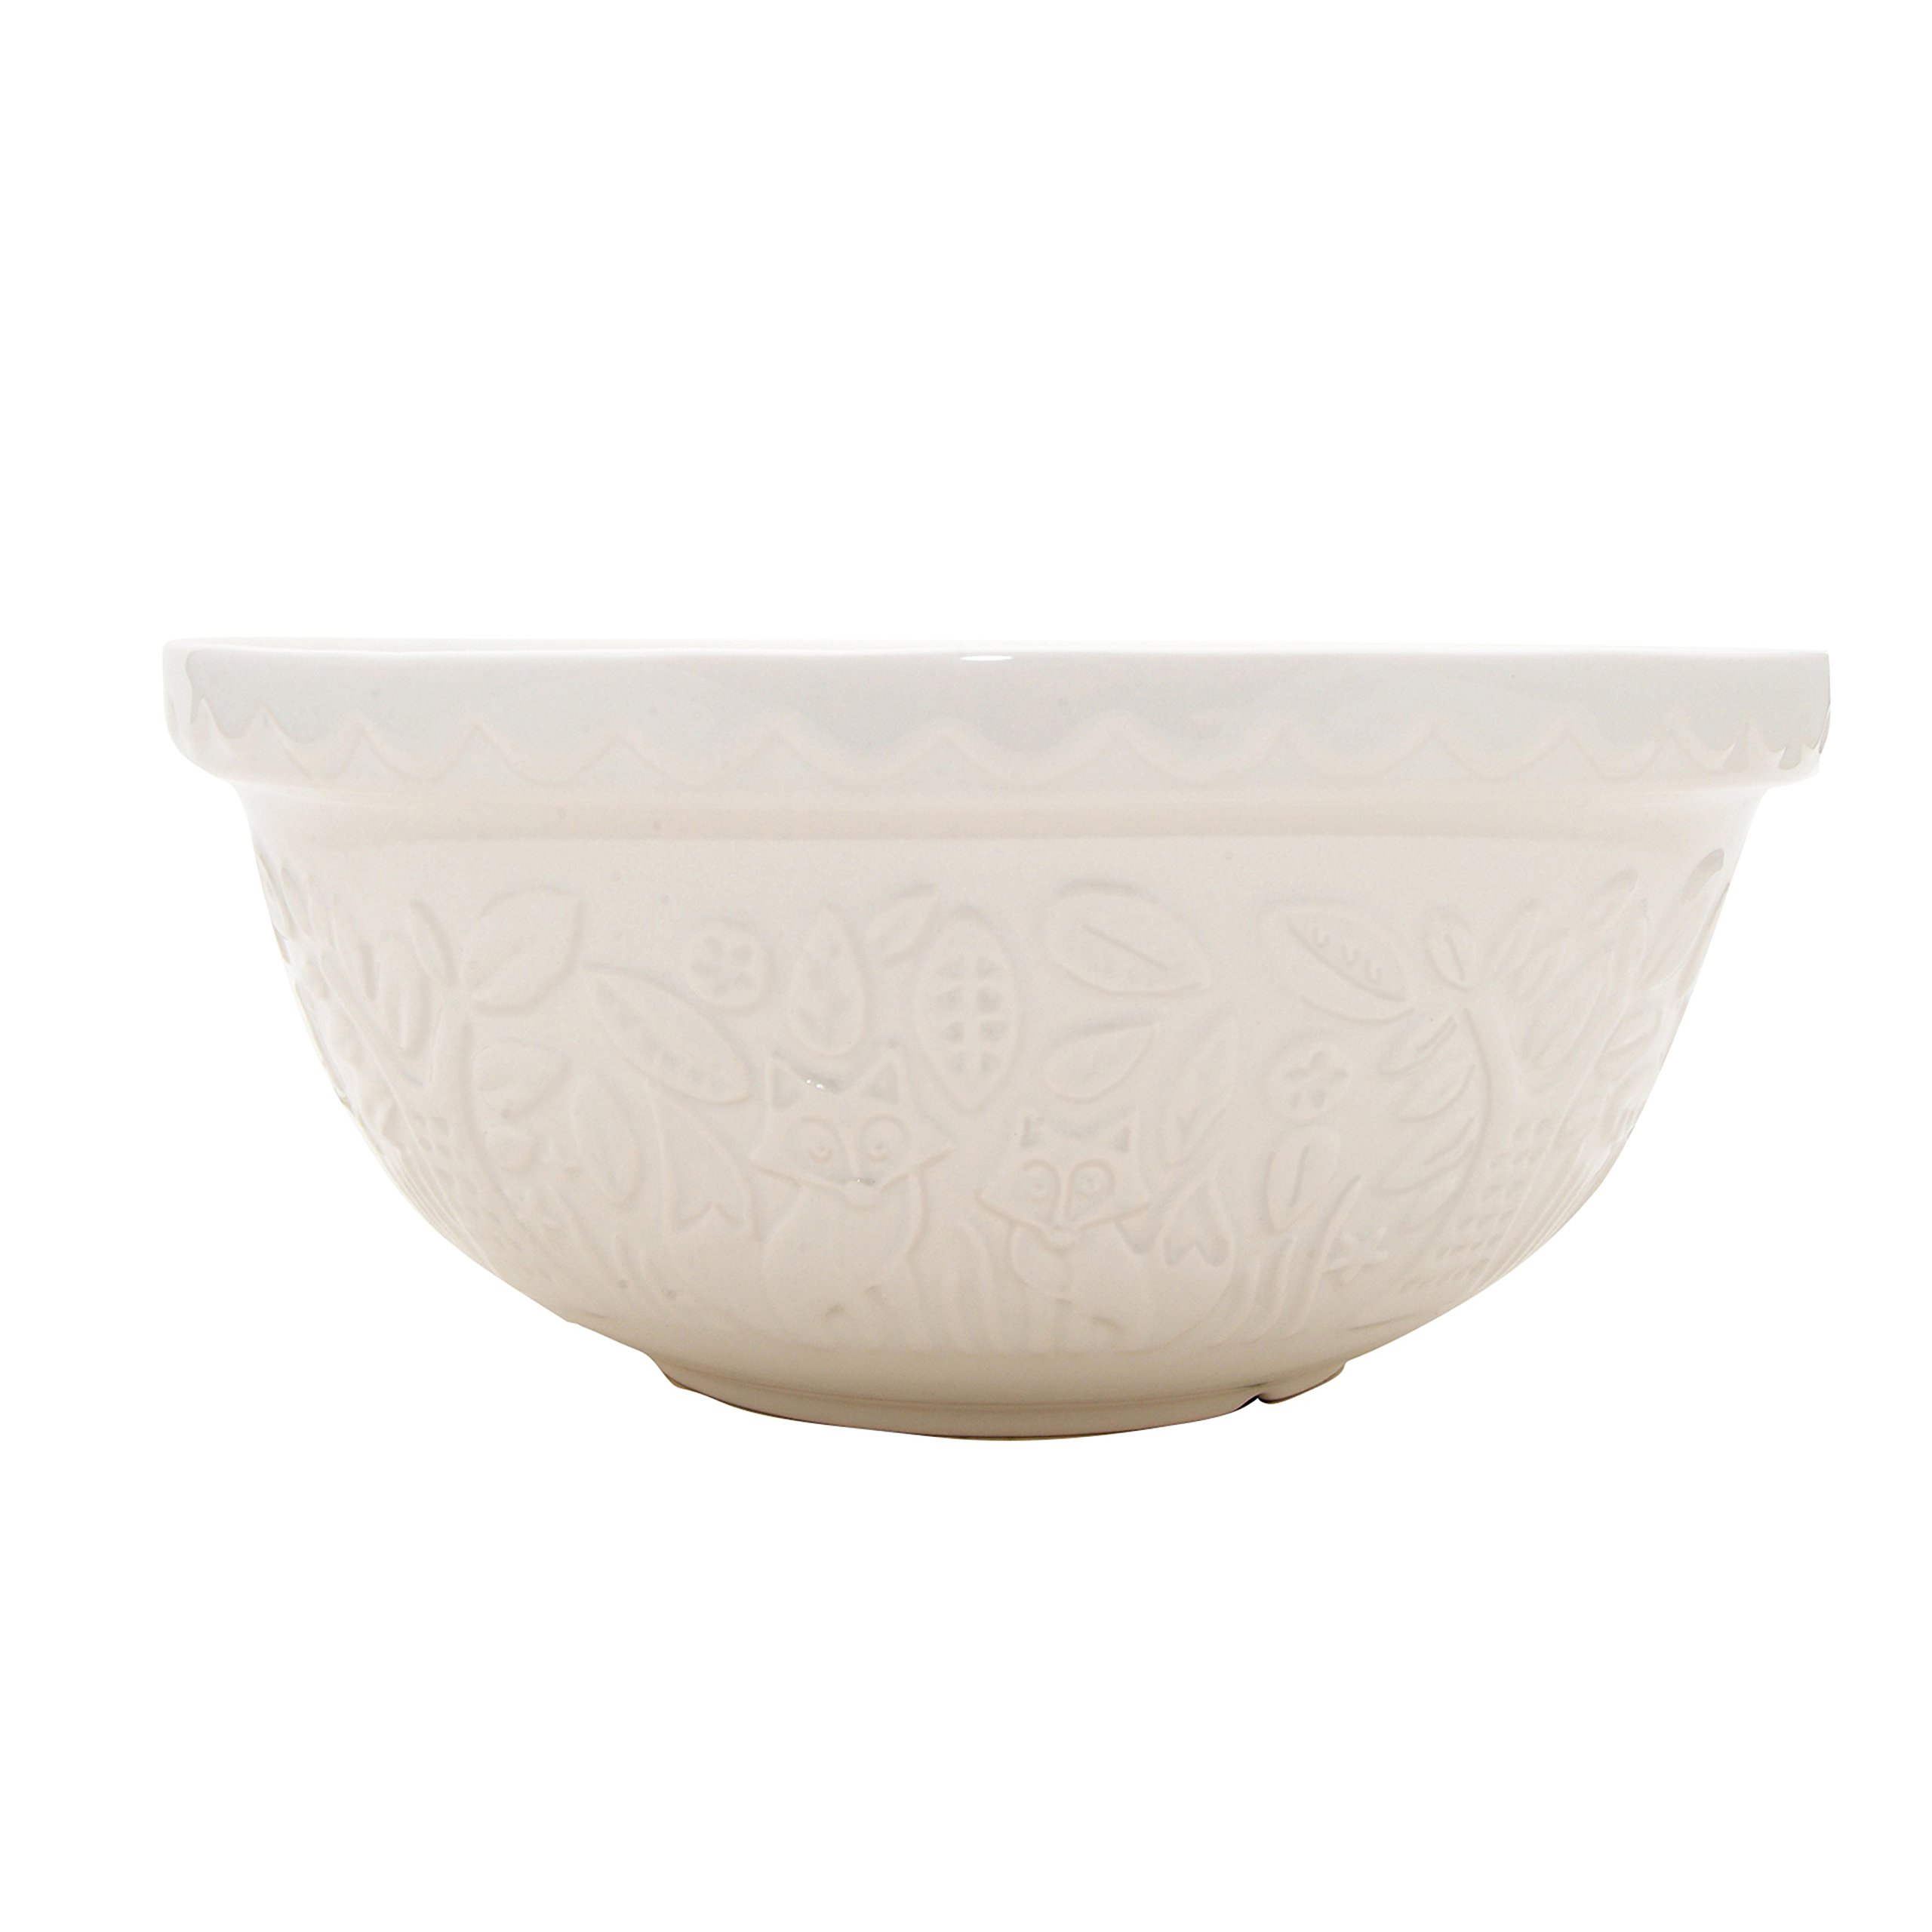 Mason Cash In The Forest Mixing Bowl, Durable Stoneware, Intricate Embossed Fox Design, 4-1/4-Quarts, 11-1/2'' Diameter, Dishwasher and Microwave Safe, Cream